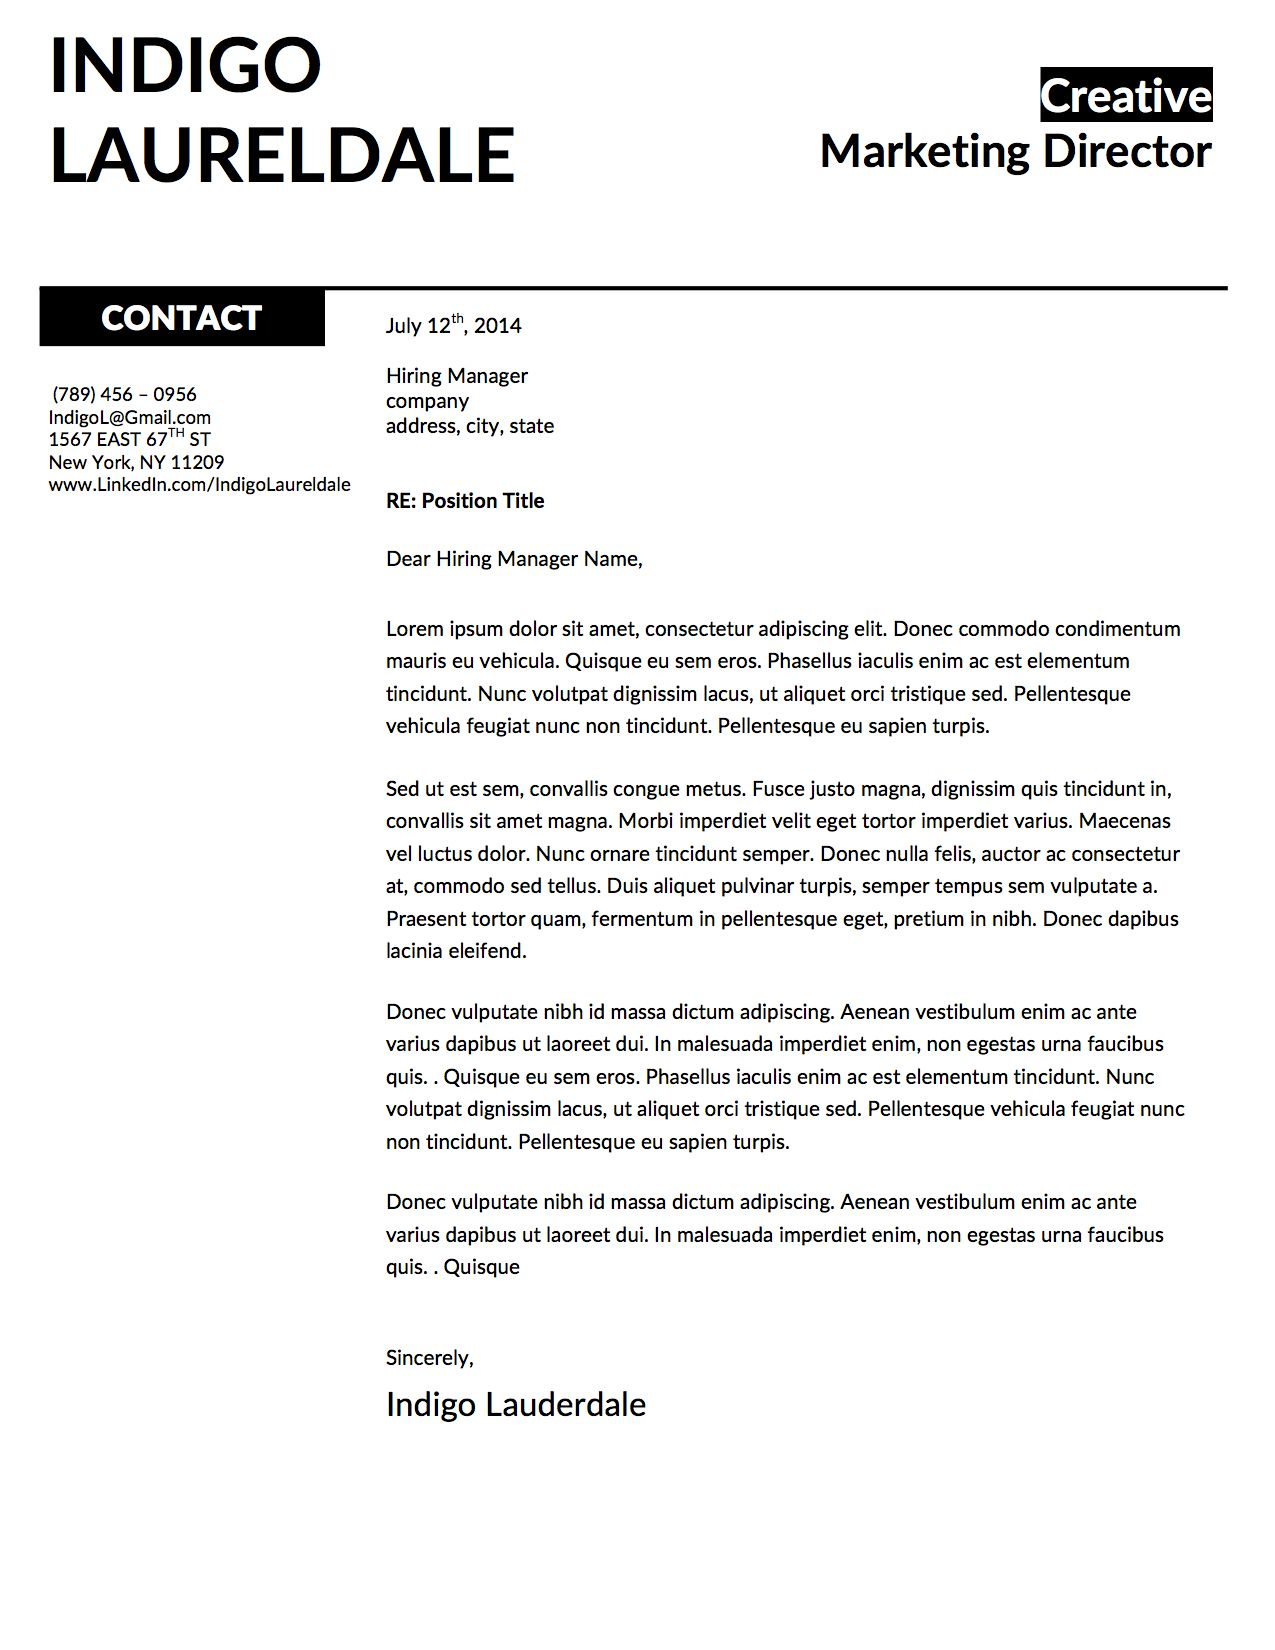 Indigo Lauderdale Cover Letter Template For Microsoft Word Indigo